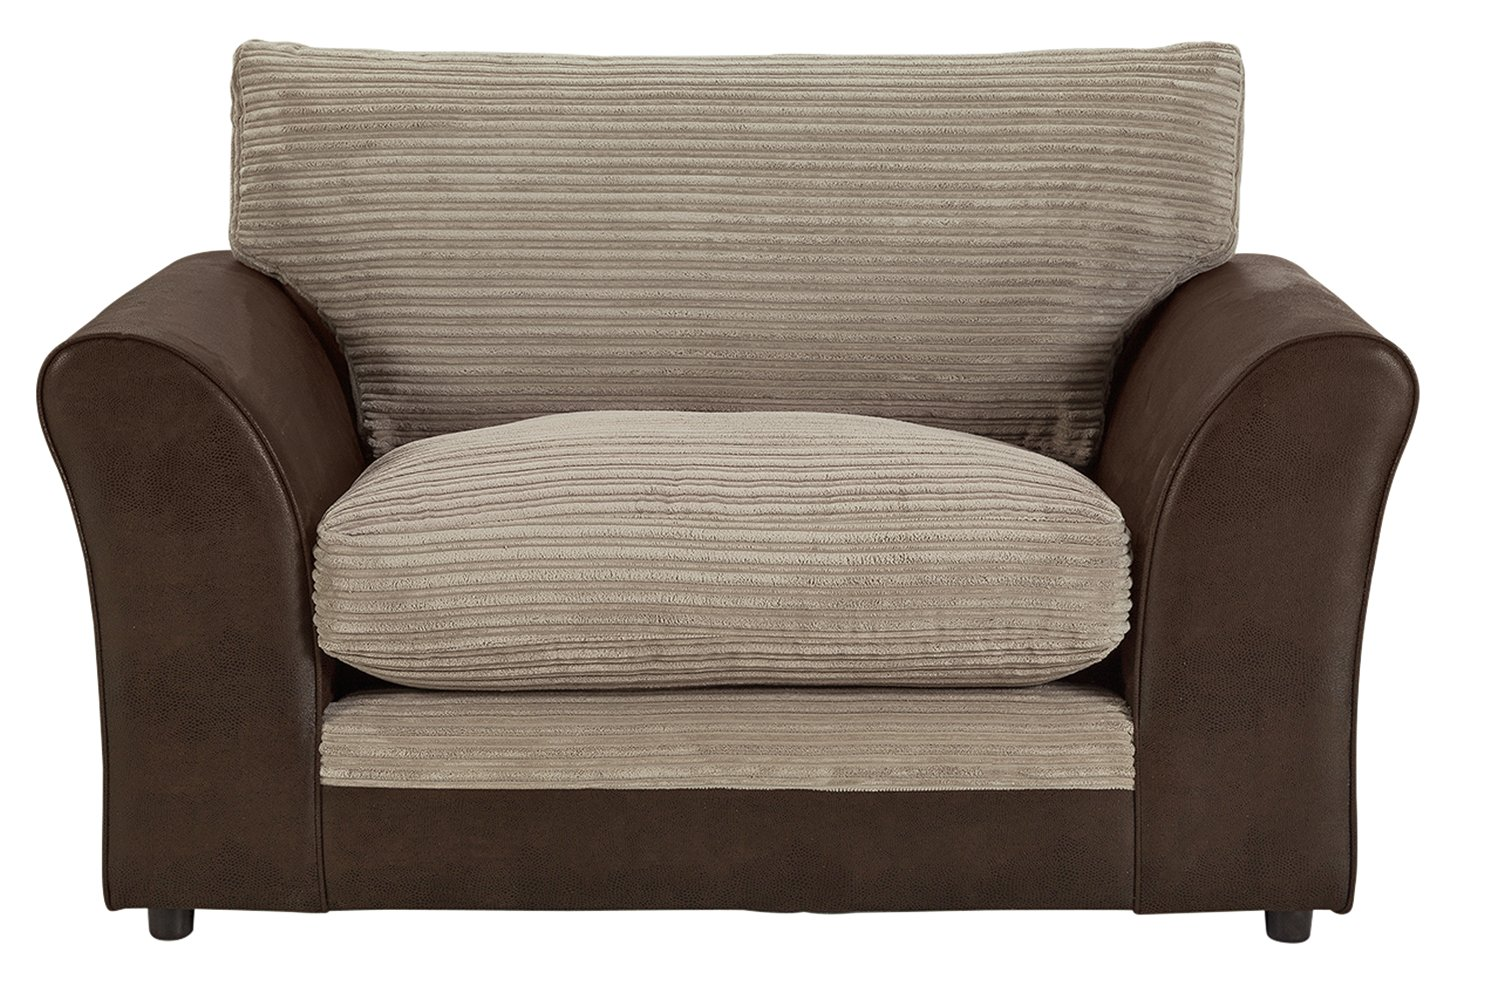 Argos Home Harley Fabric Cuddle Chair   Mink